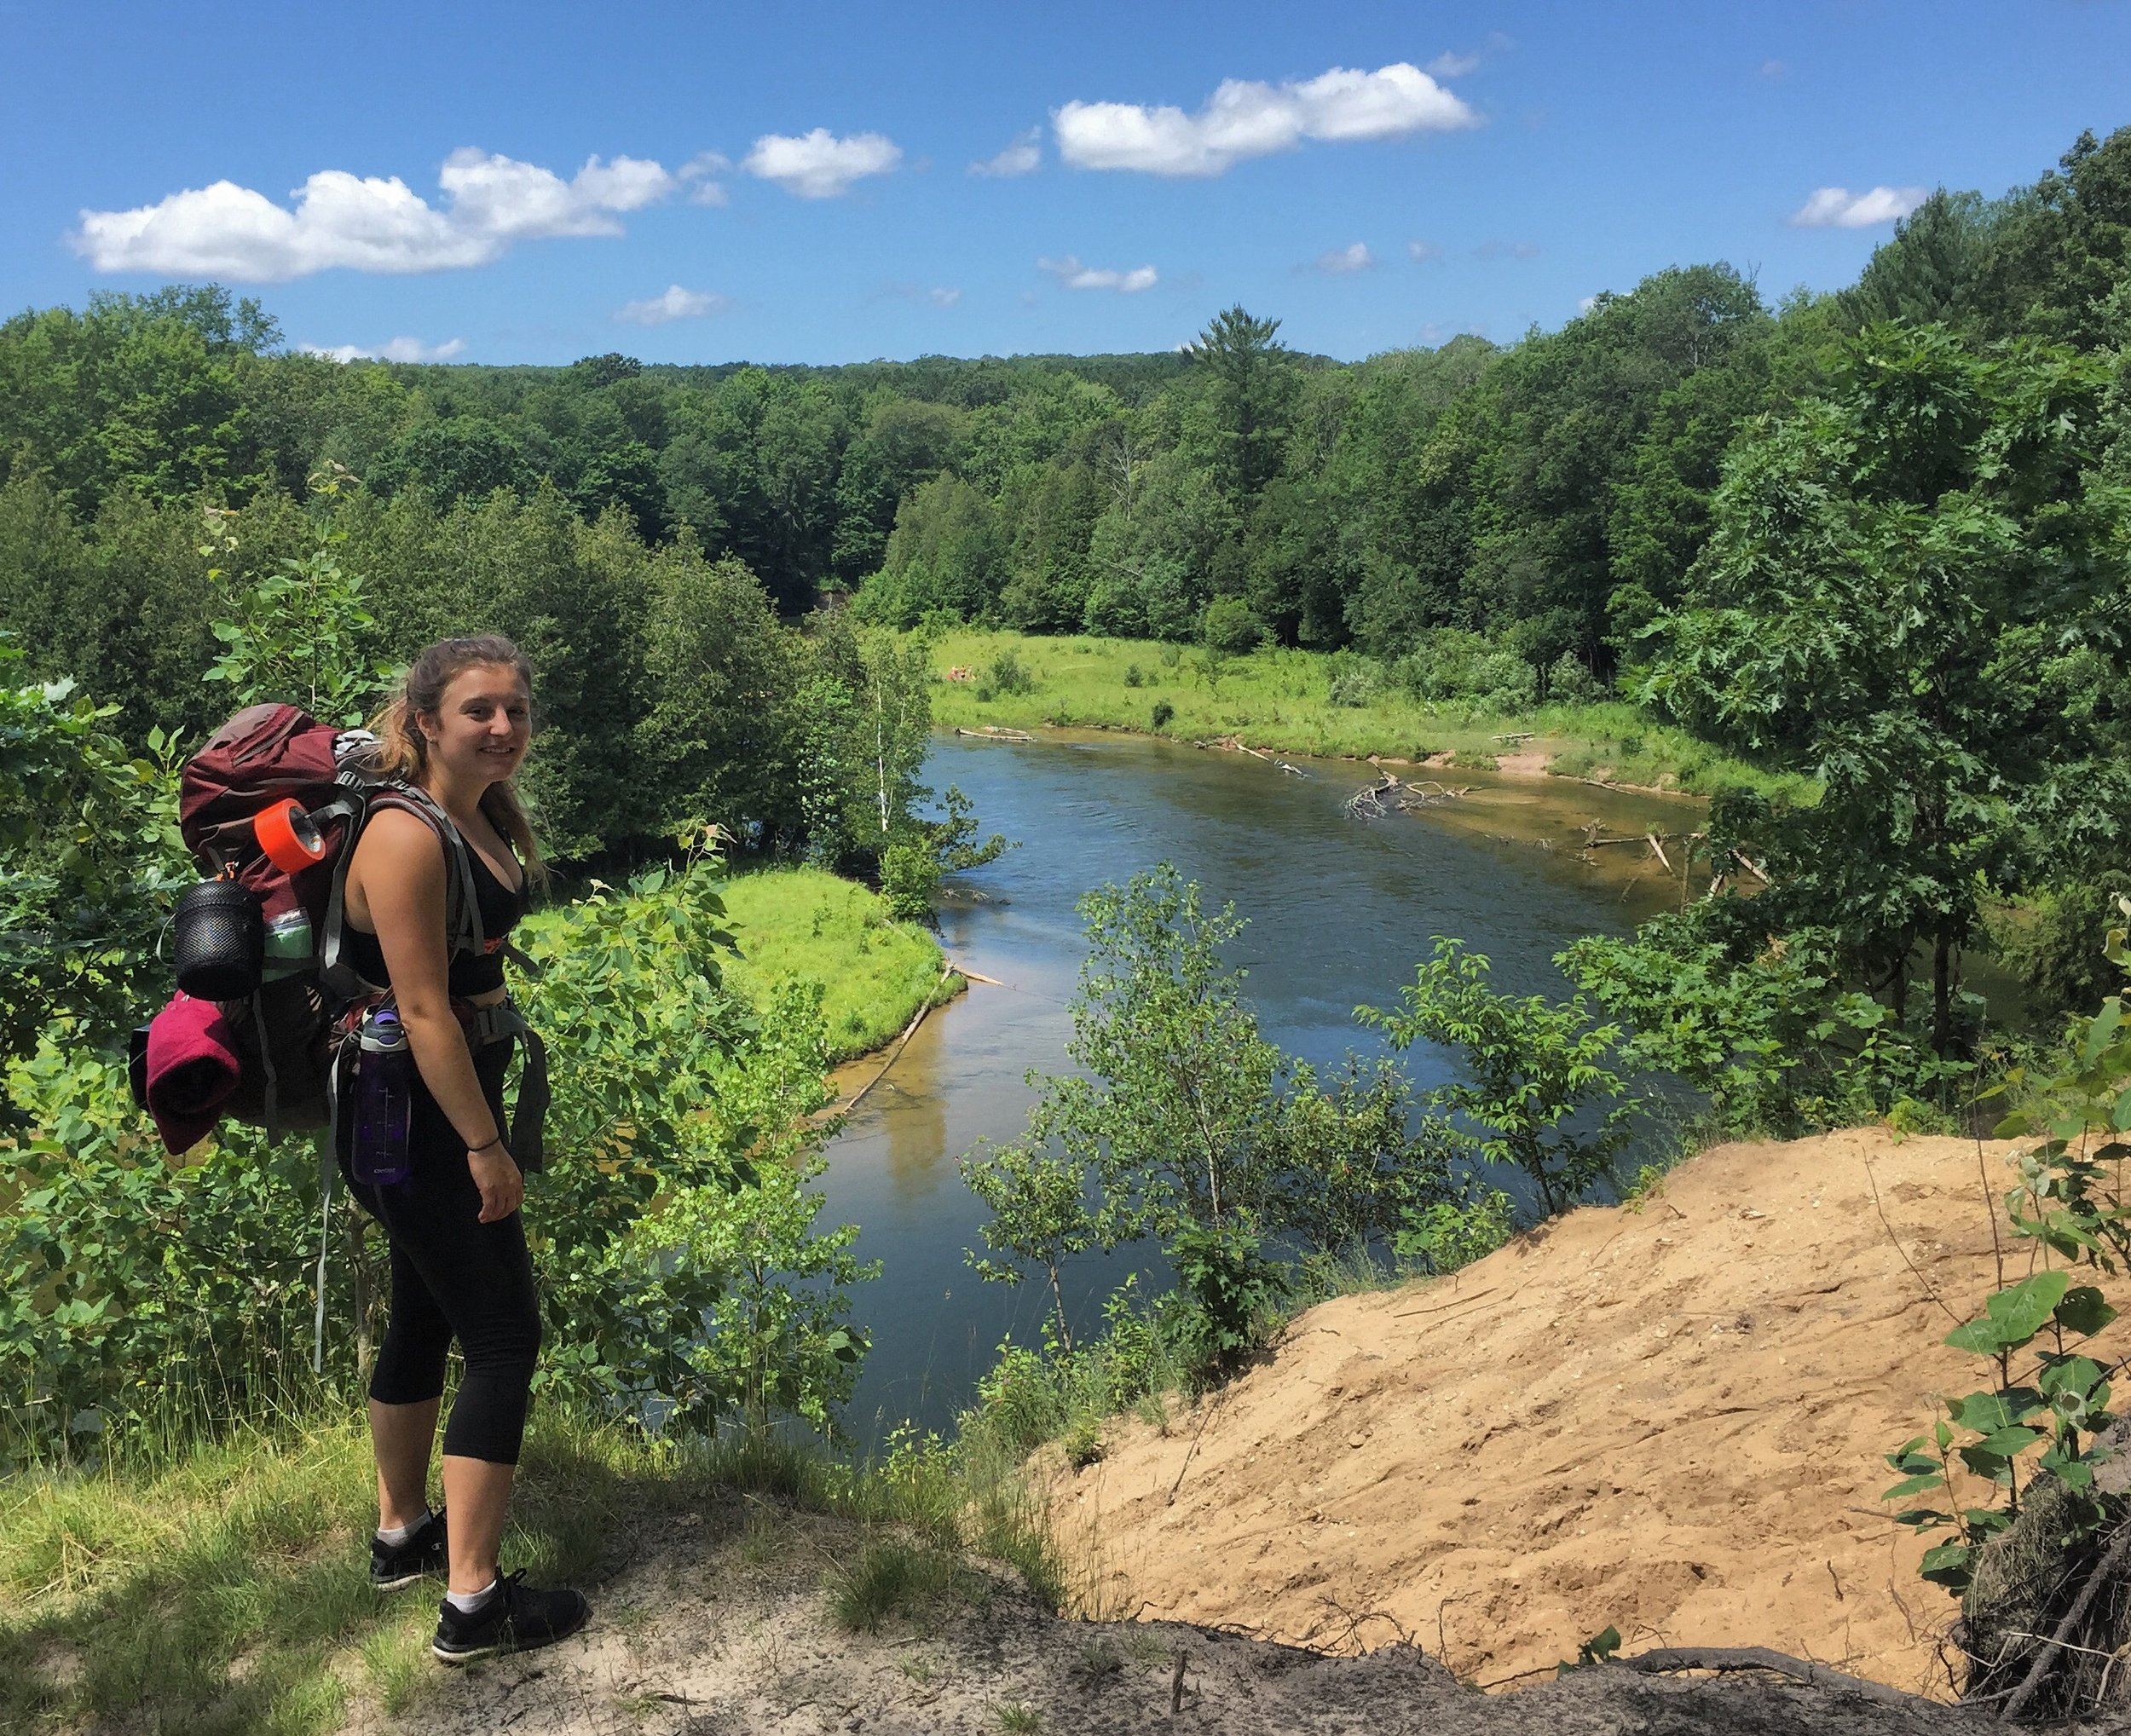 Lacie backpacking the Manistee River Trail in Michigan